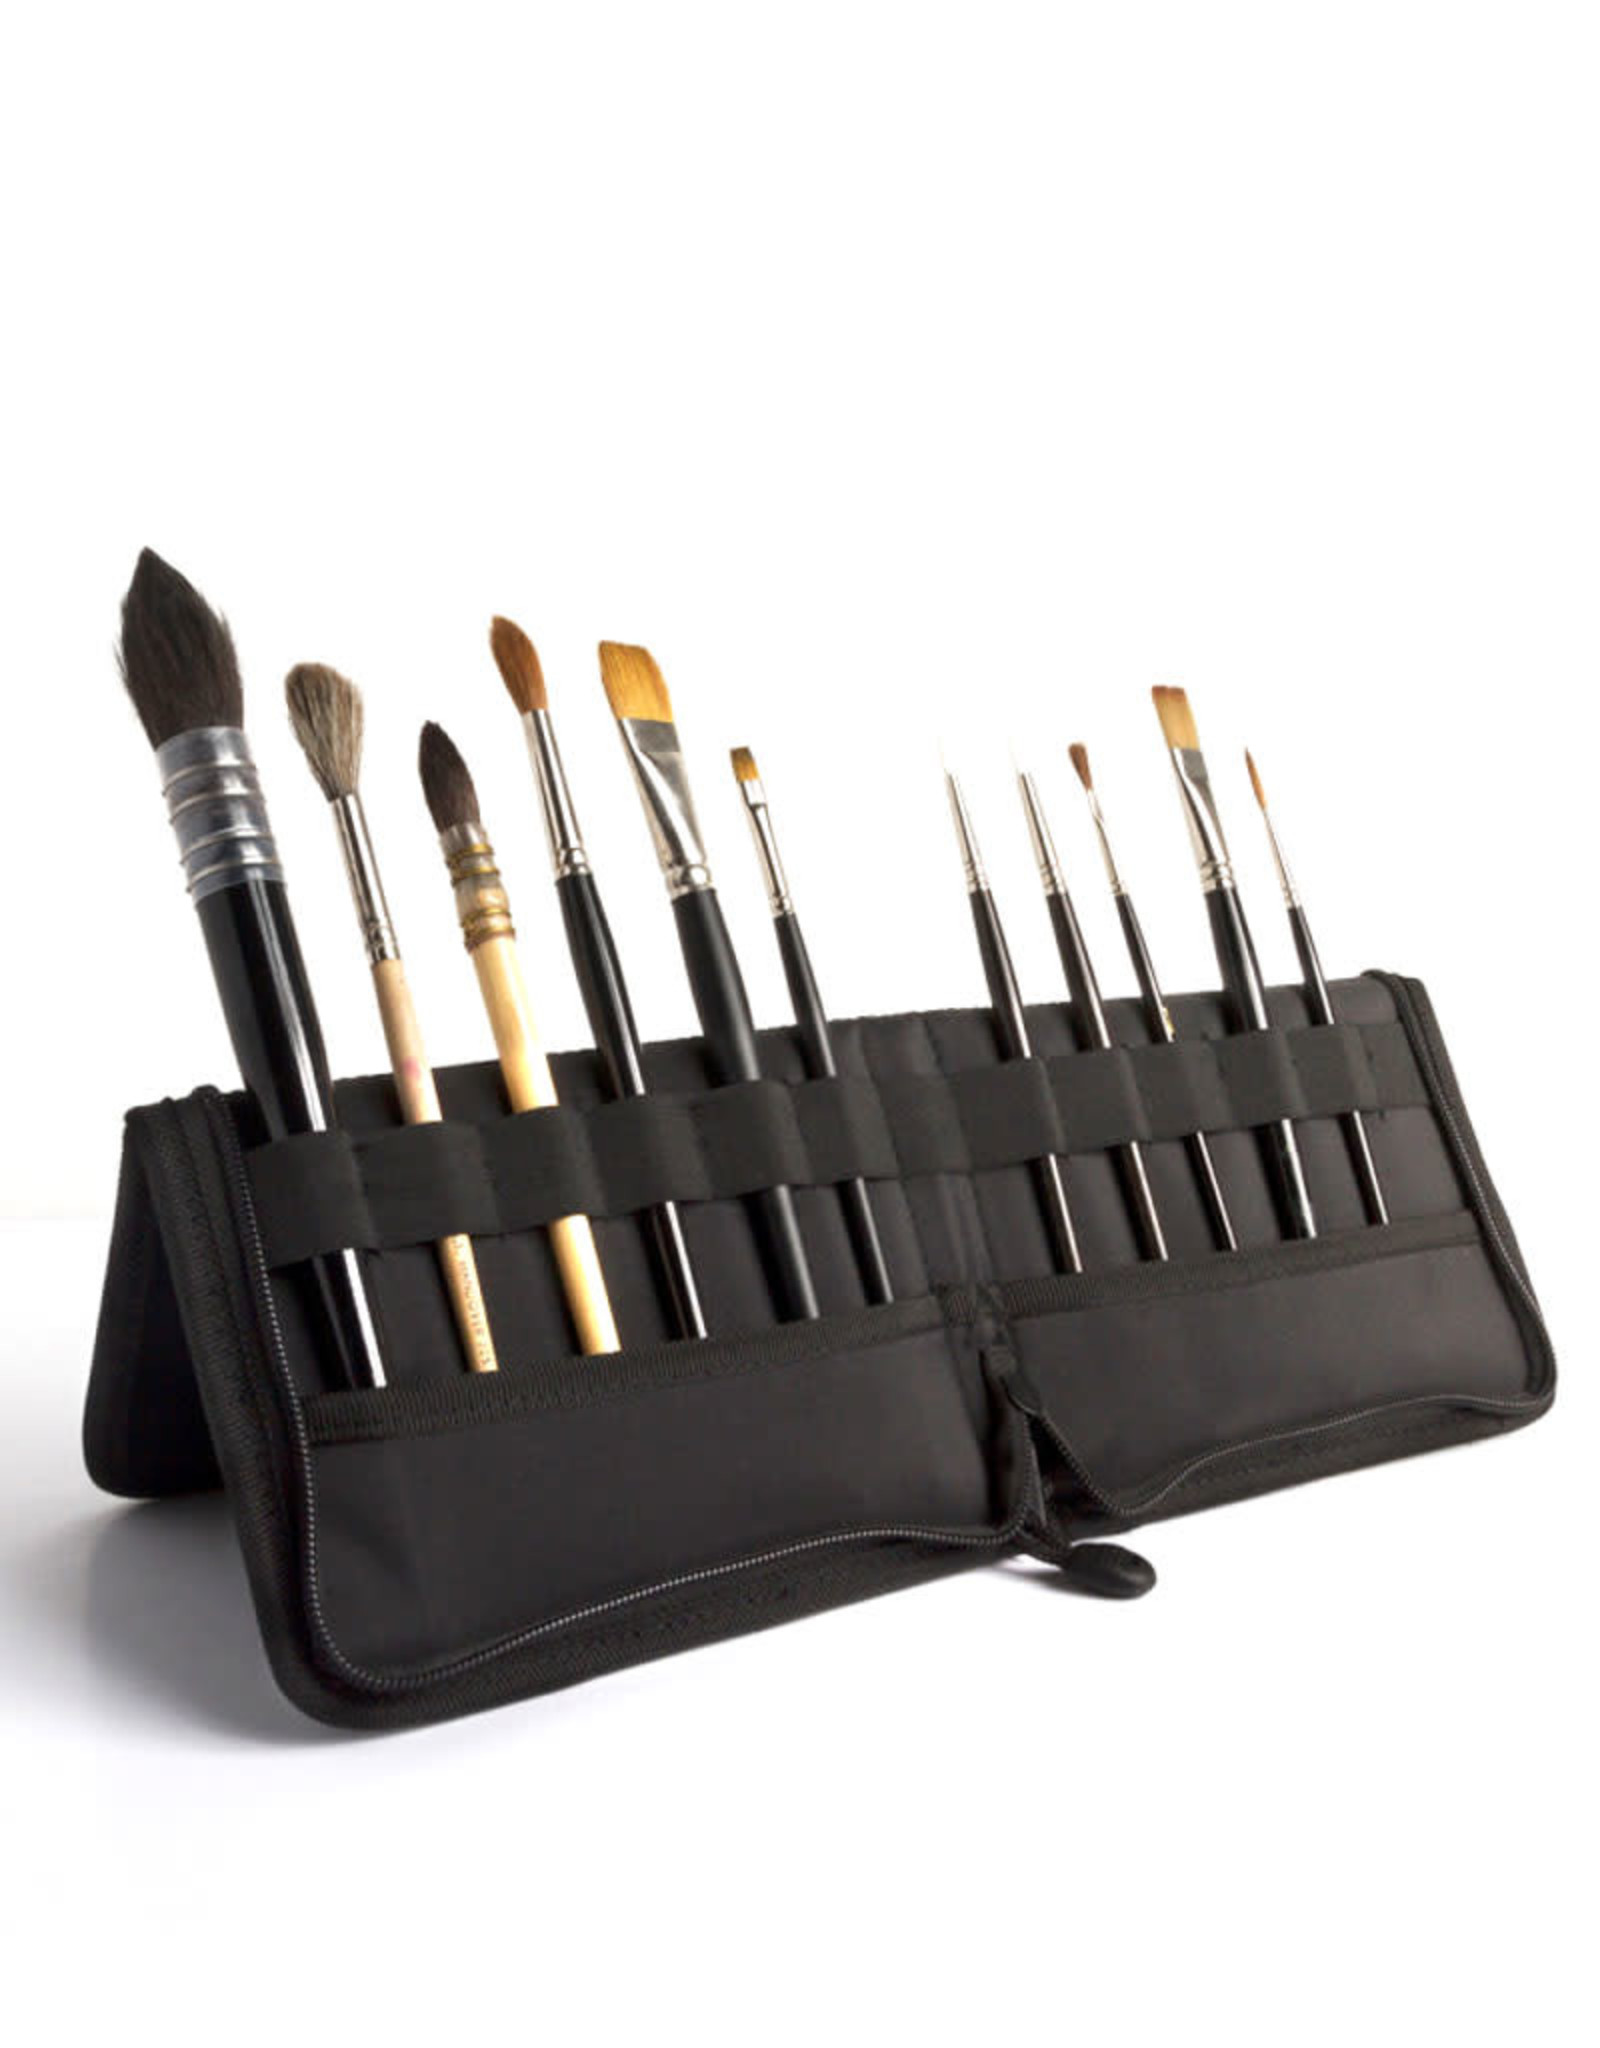 A. S. Handover Handover Brush Case (Small) 26 x 18 cm